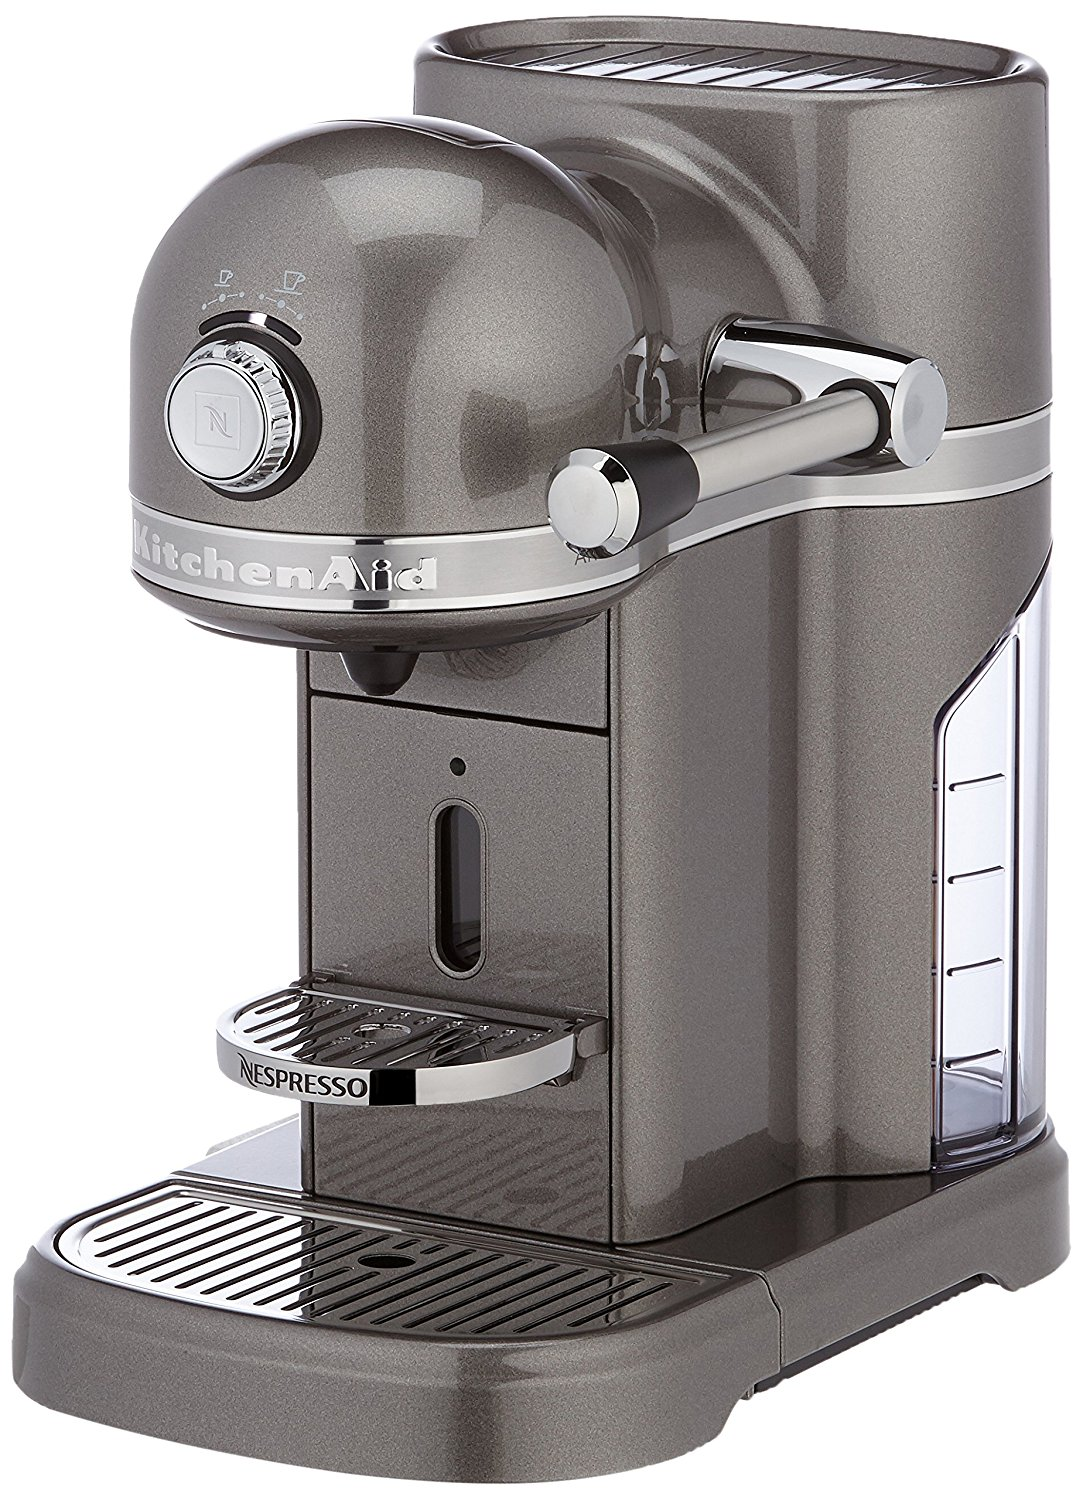 krups kitchenaid cafeti re nespresso machine espresso test et avis. Black Bedroom Furniture Sets. Home Design Ideas